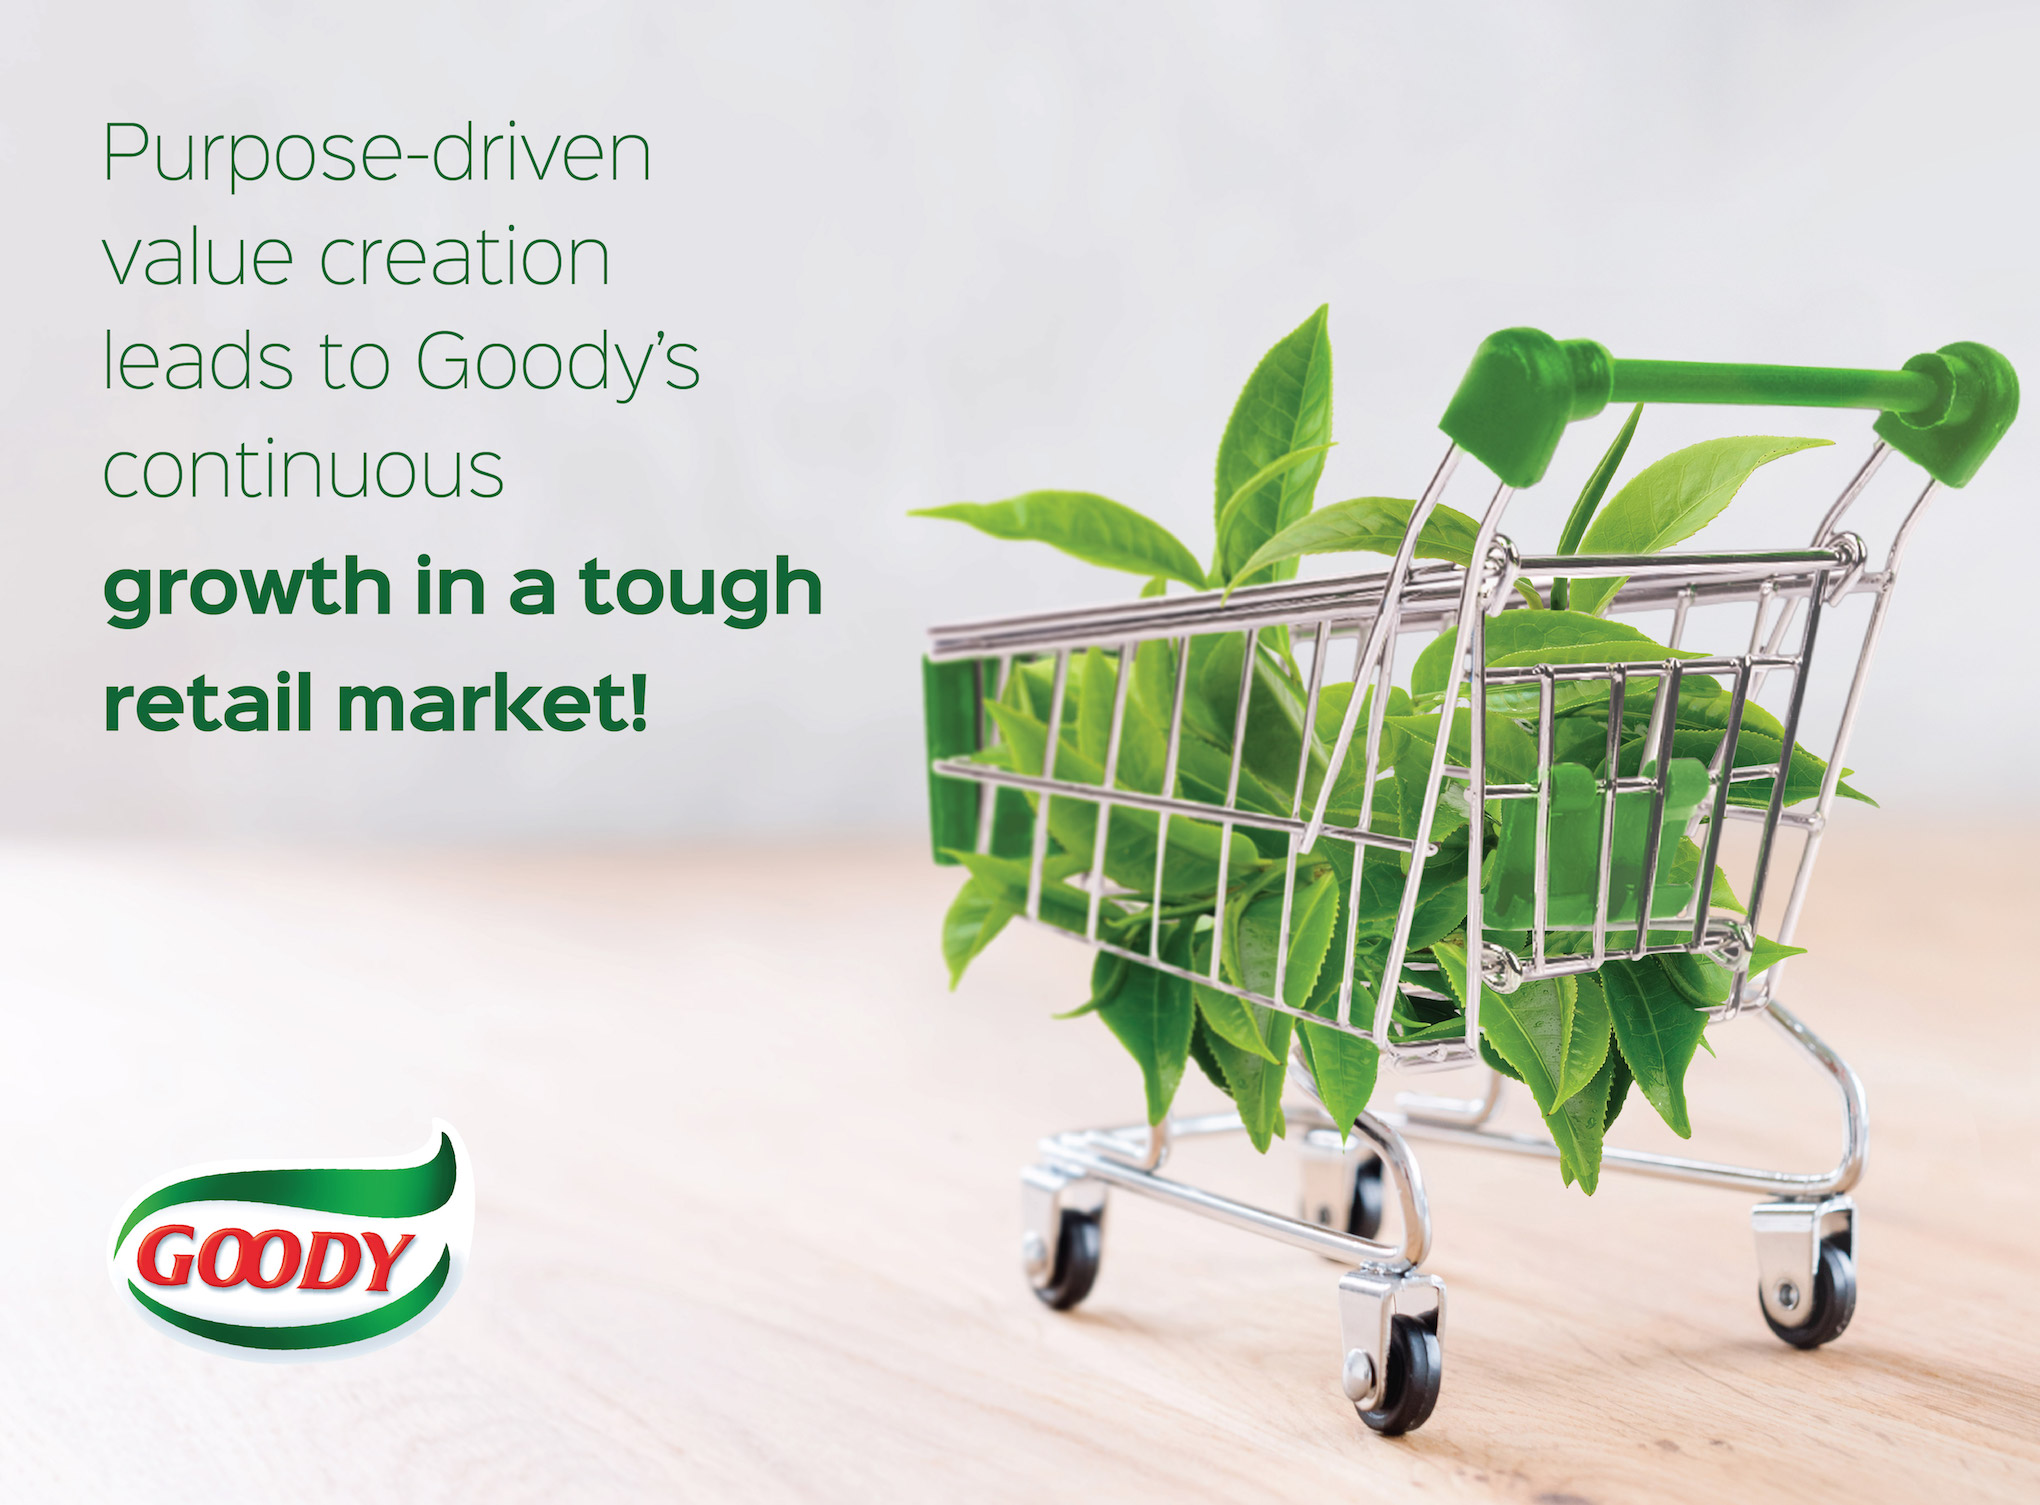 Purpose-driven value creation leads to Goody's continuous growth in a tough retail market